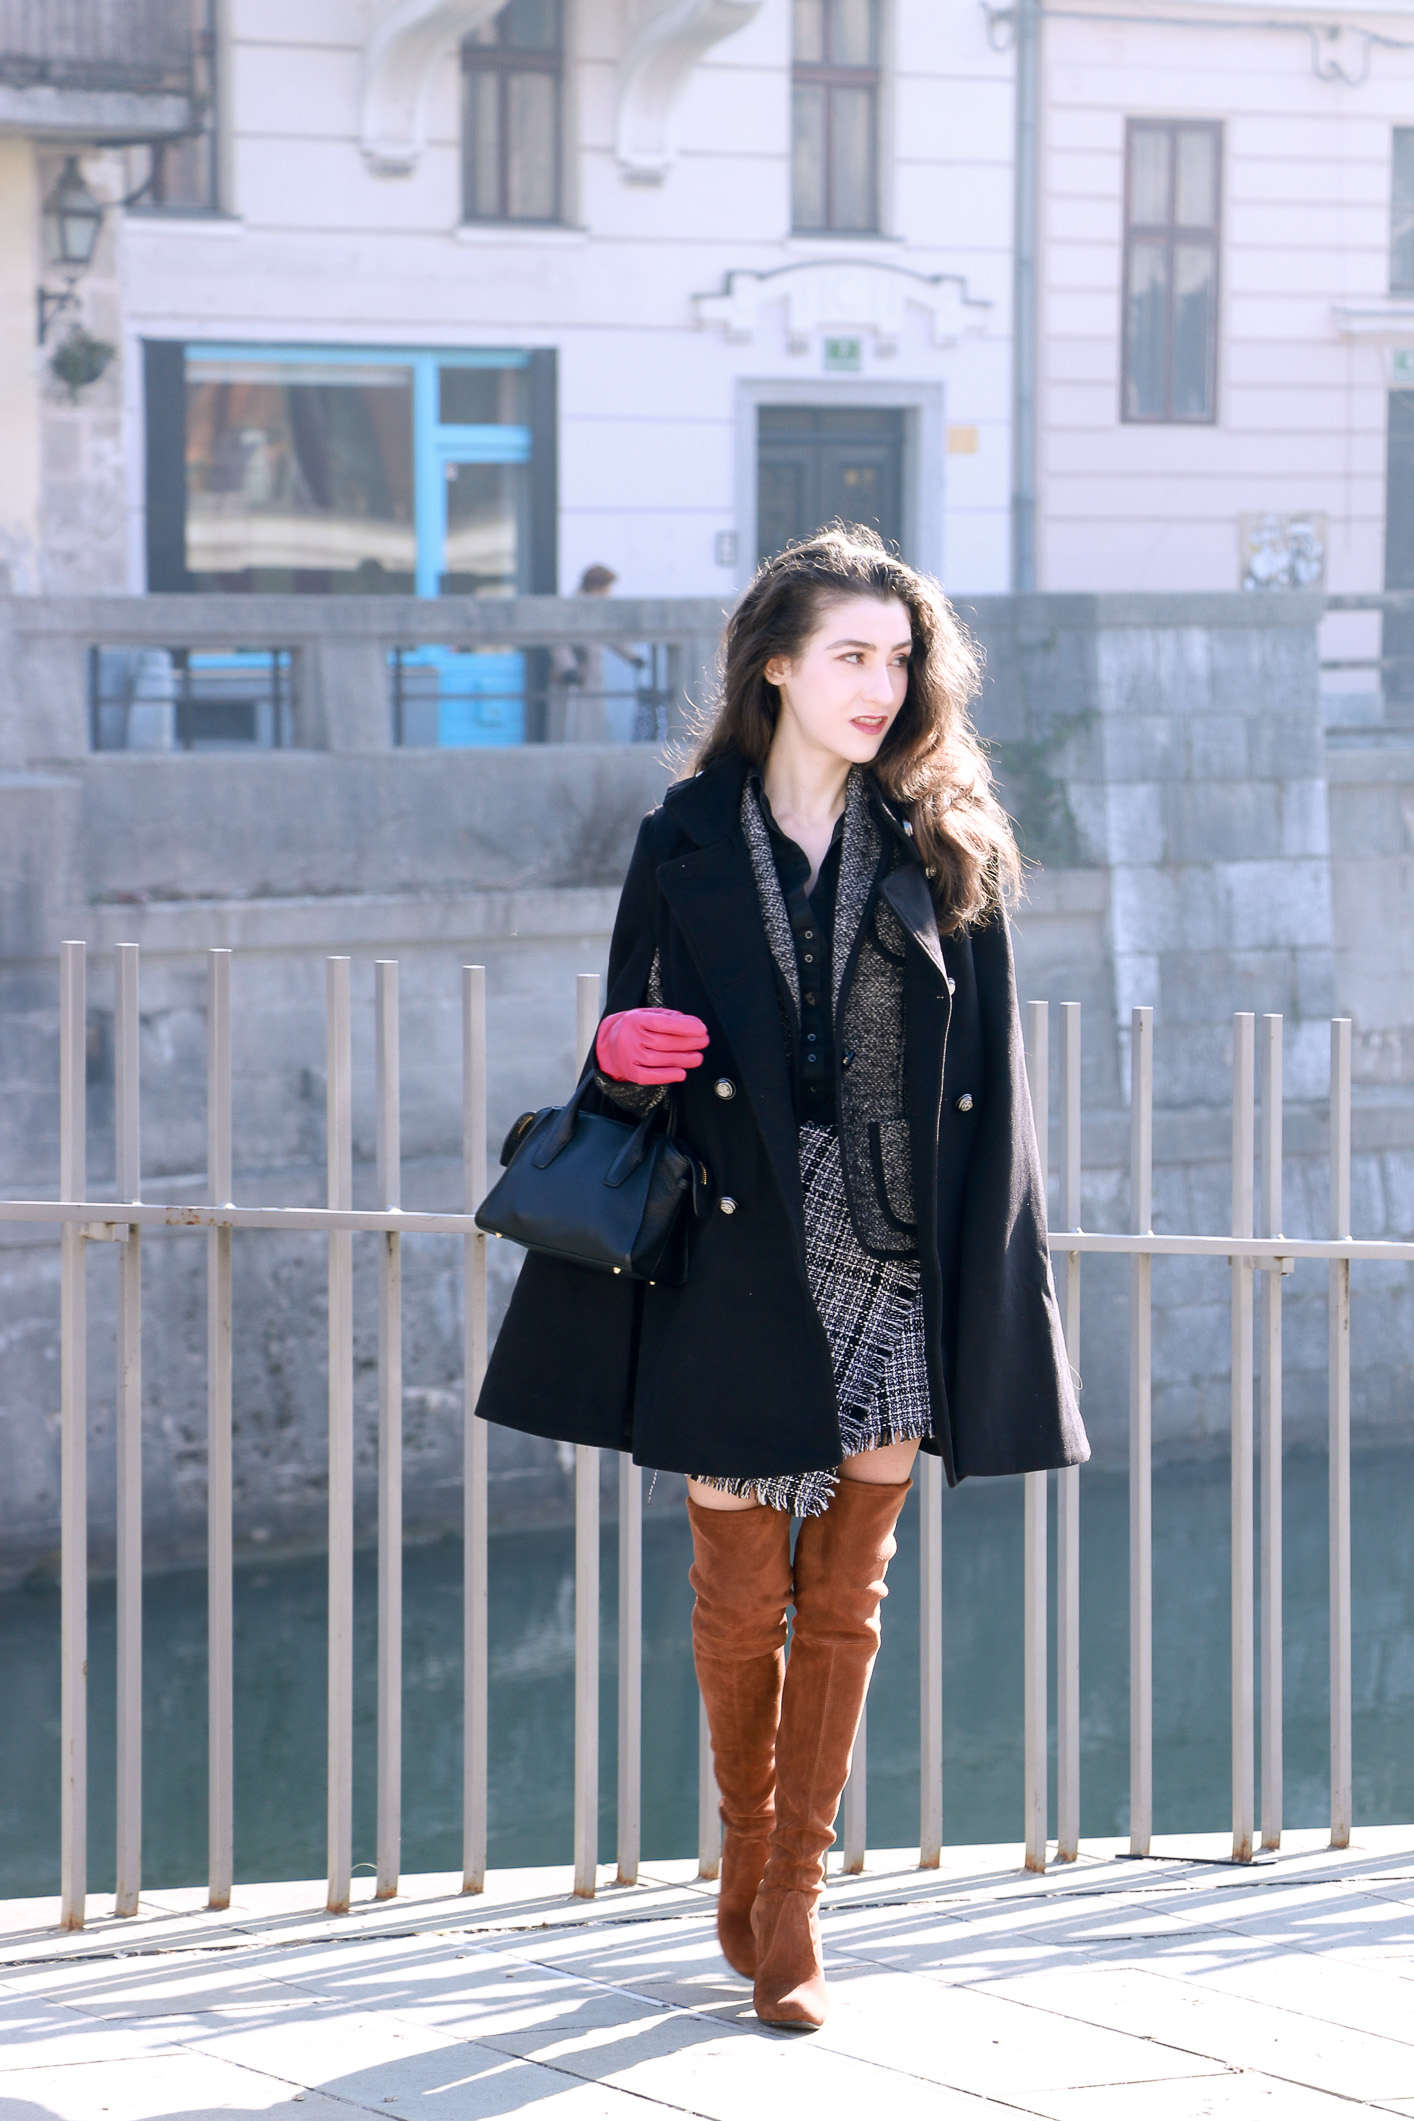 Fashion blogger Veronika Lipar of Brunette From Wall Street sharing her chic business casual outfit